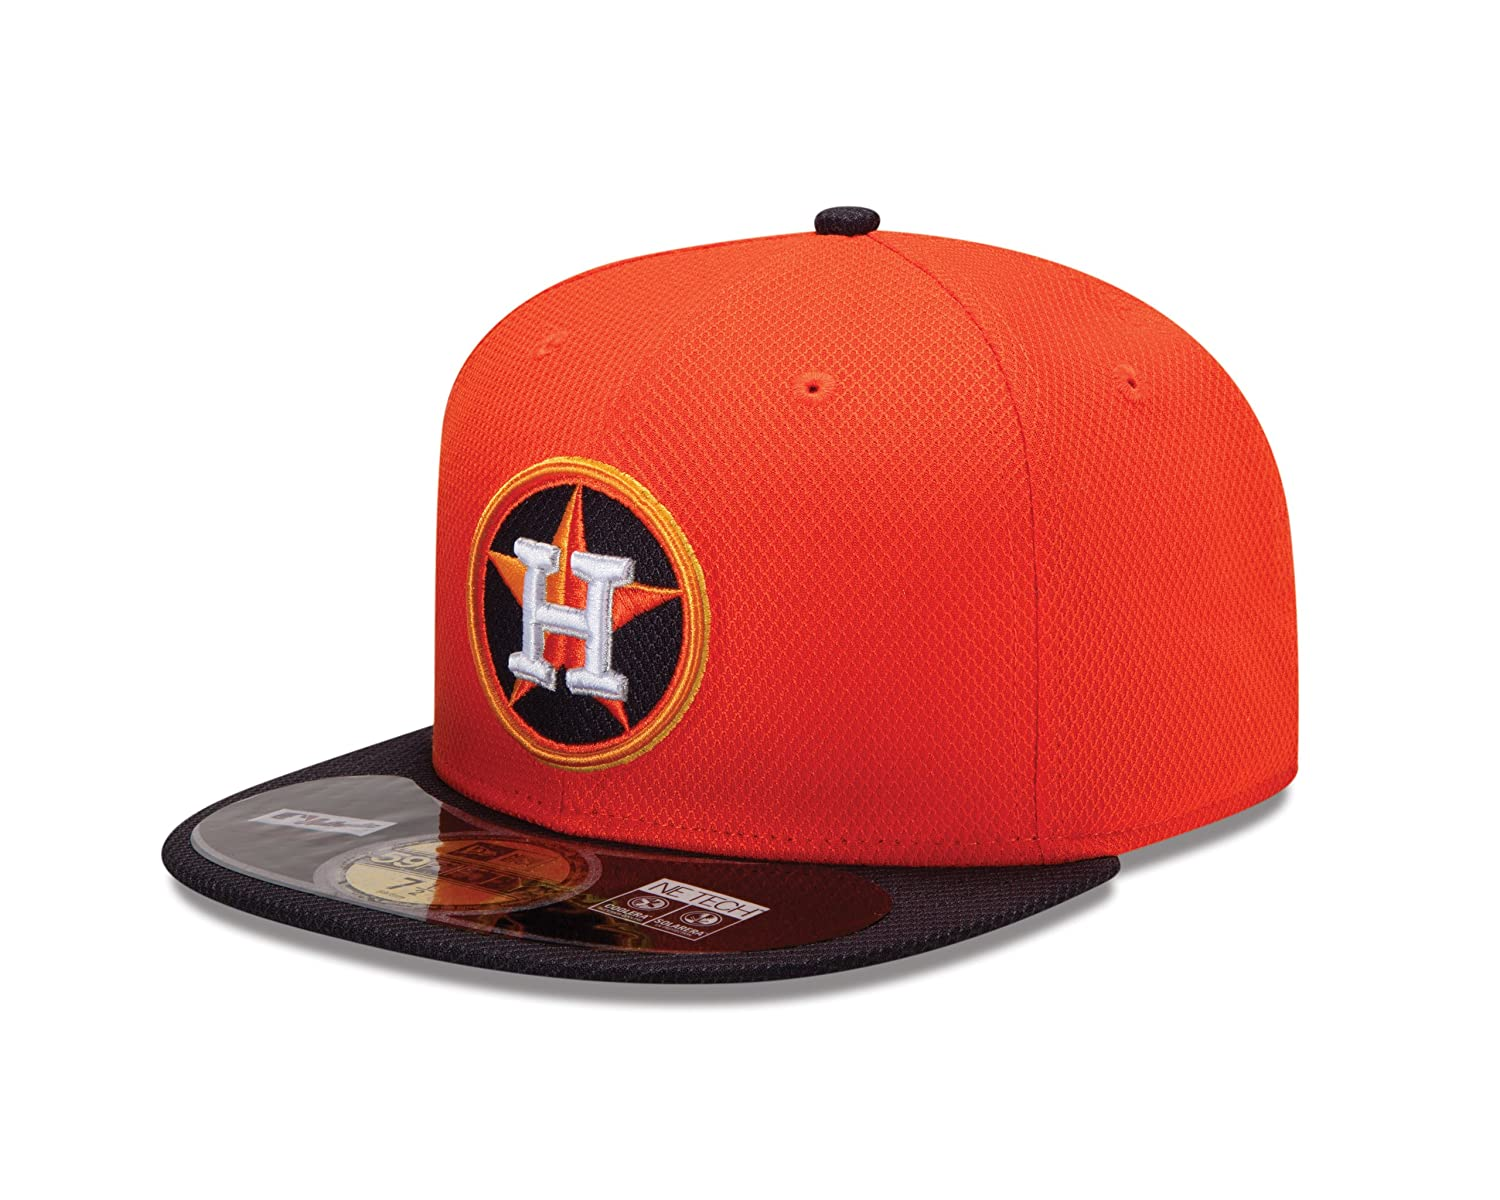 MLB Houston Astros Batting Practice 59Fifty Baseball Cap, Orange/Black карусель